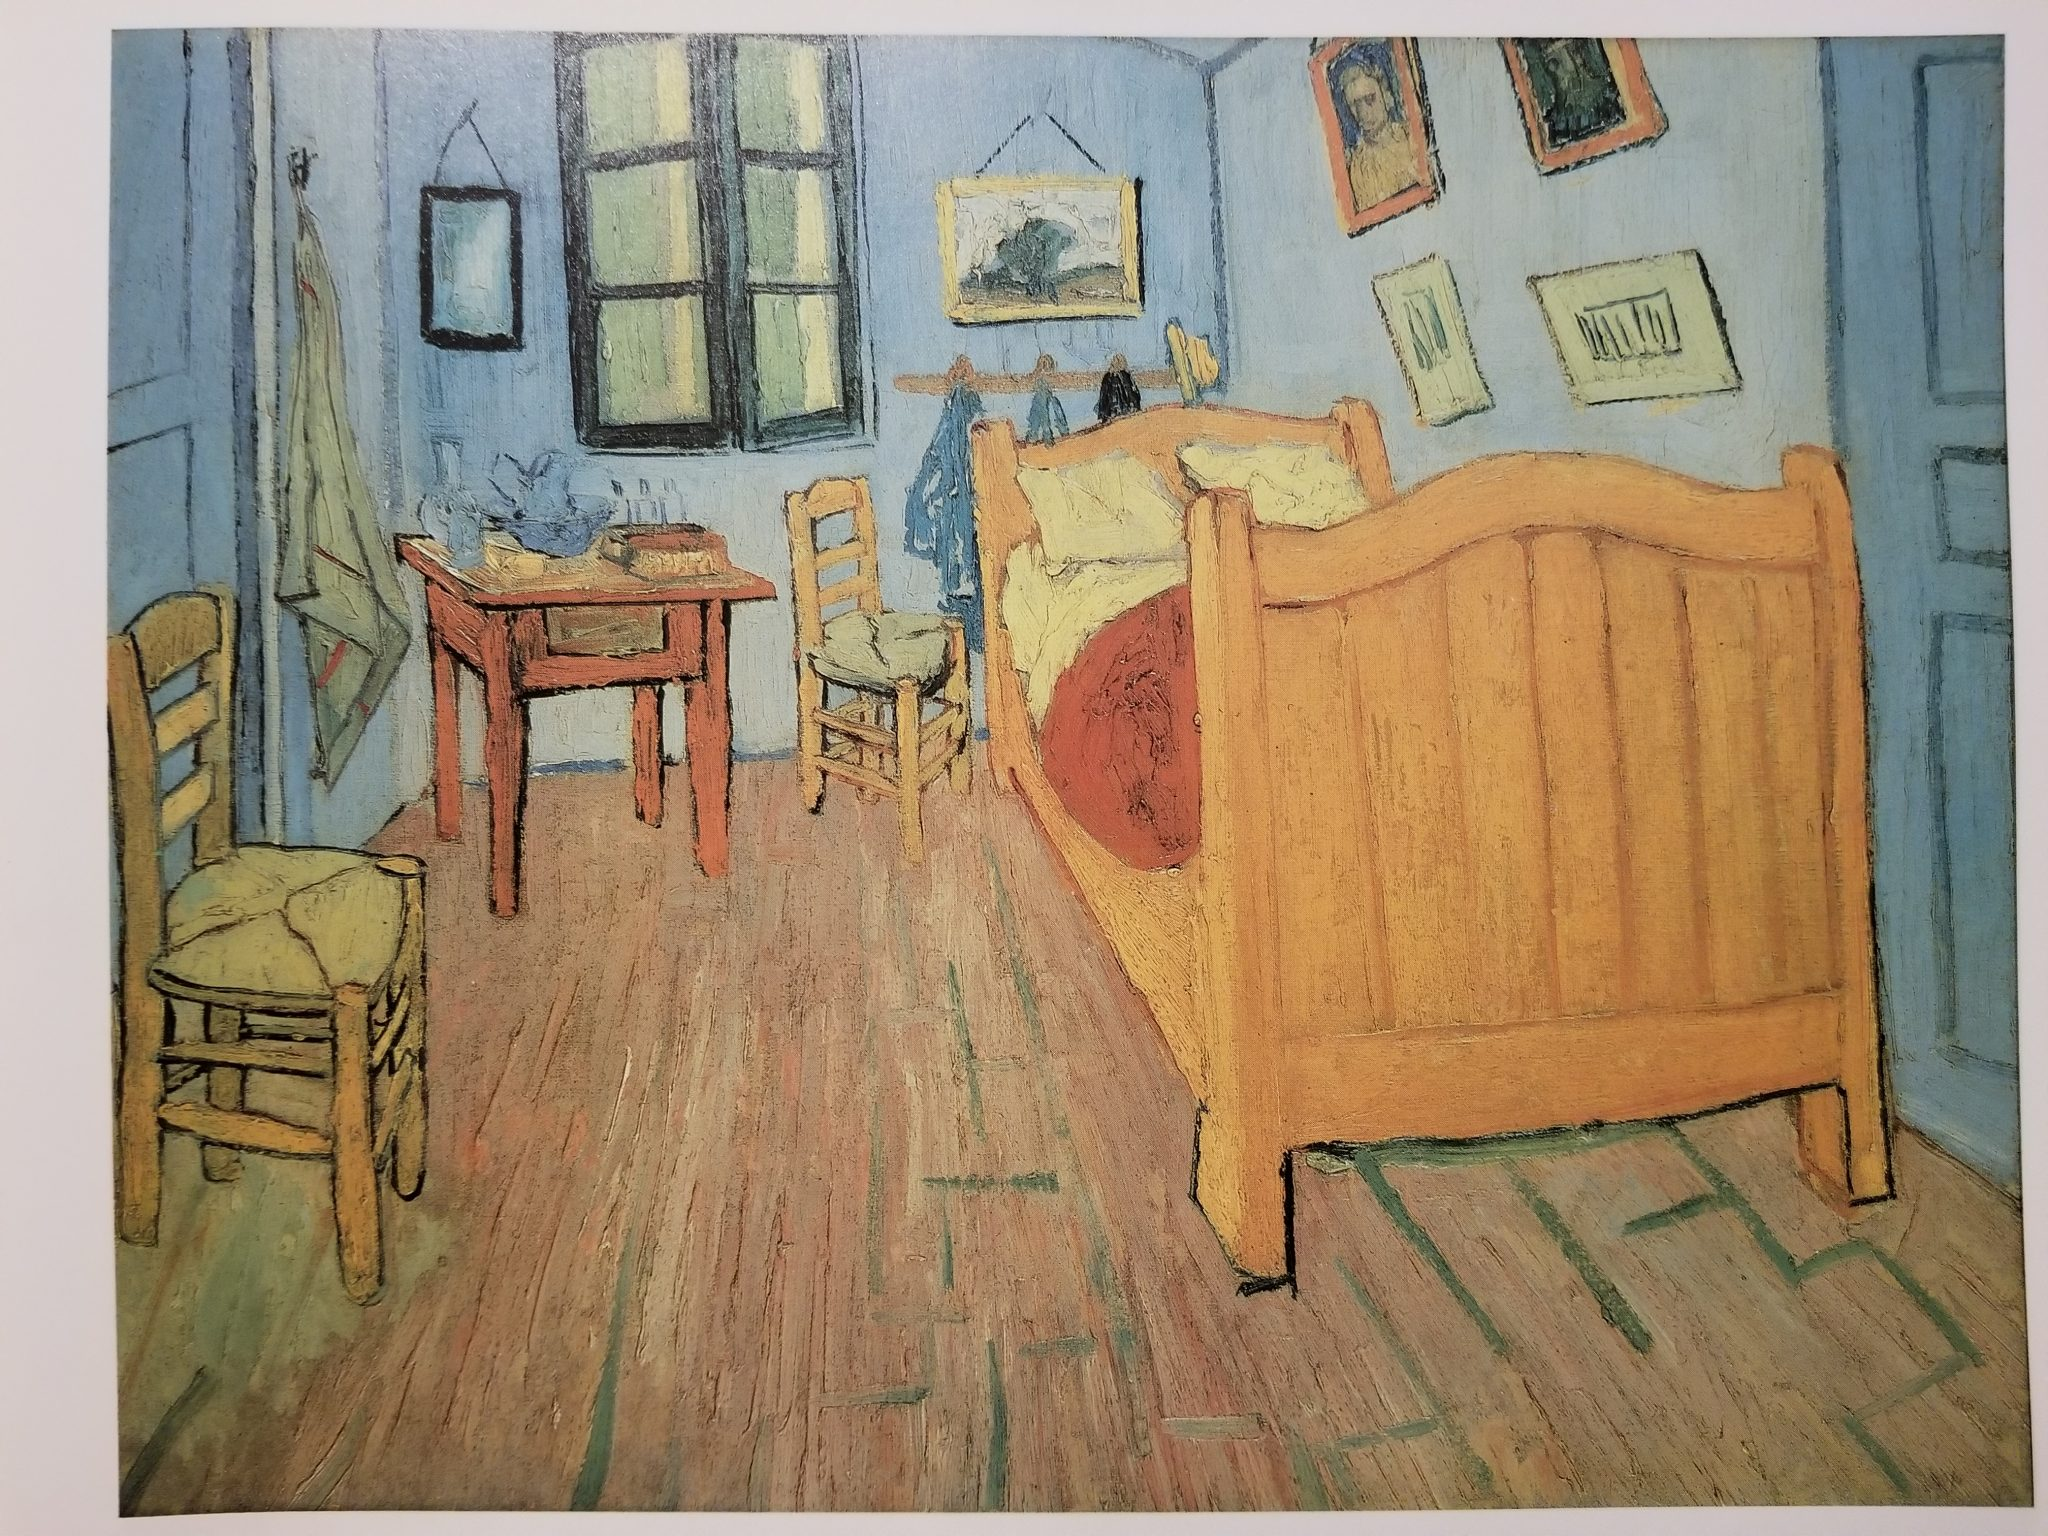 Bedroom in Arles by van Gogh